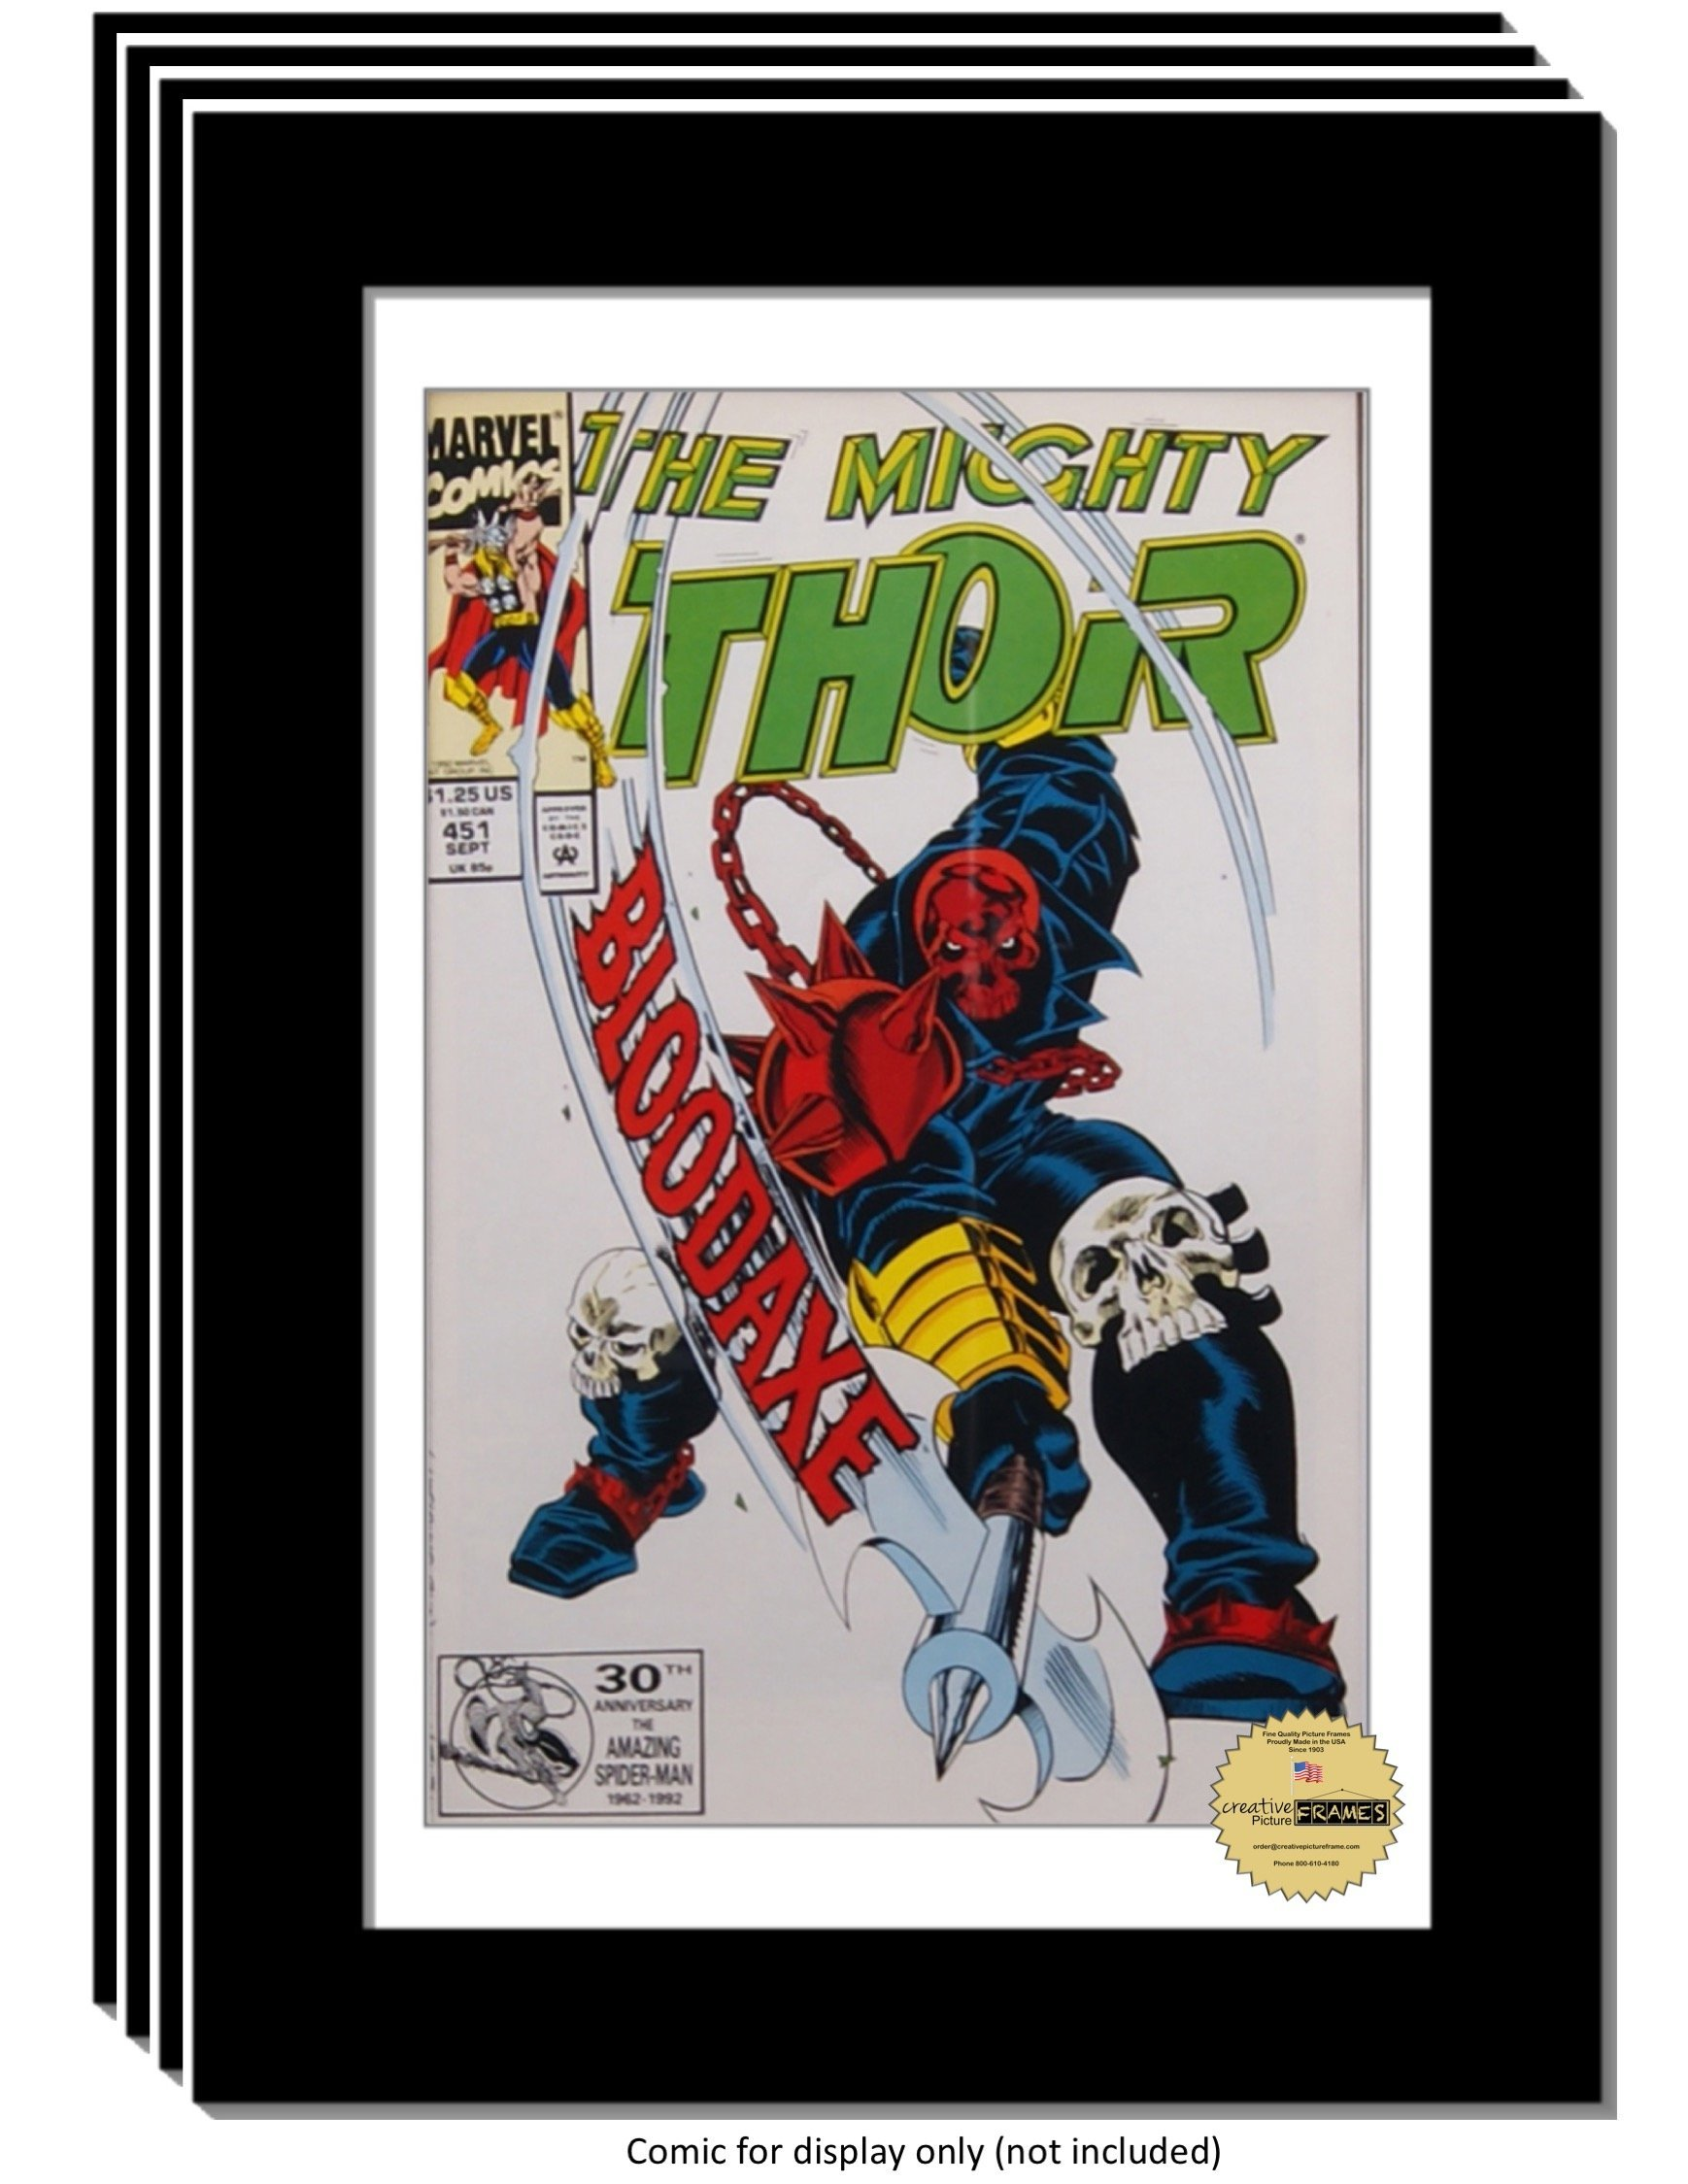 CreativePF [4pk8x12bk-w] Collectors Art Comic Book Frame with White Mat, Insert for 6.6x10.1 Comic w/ Easel Stand and Wall Hanger (4-Pack)